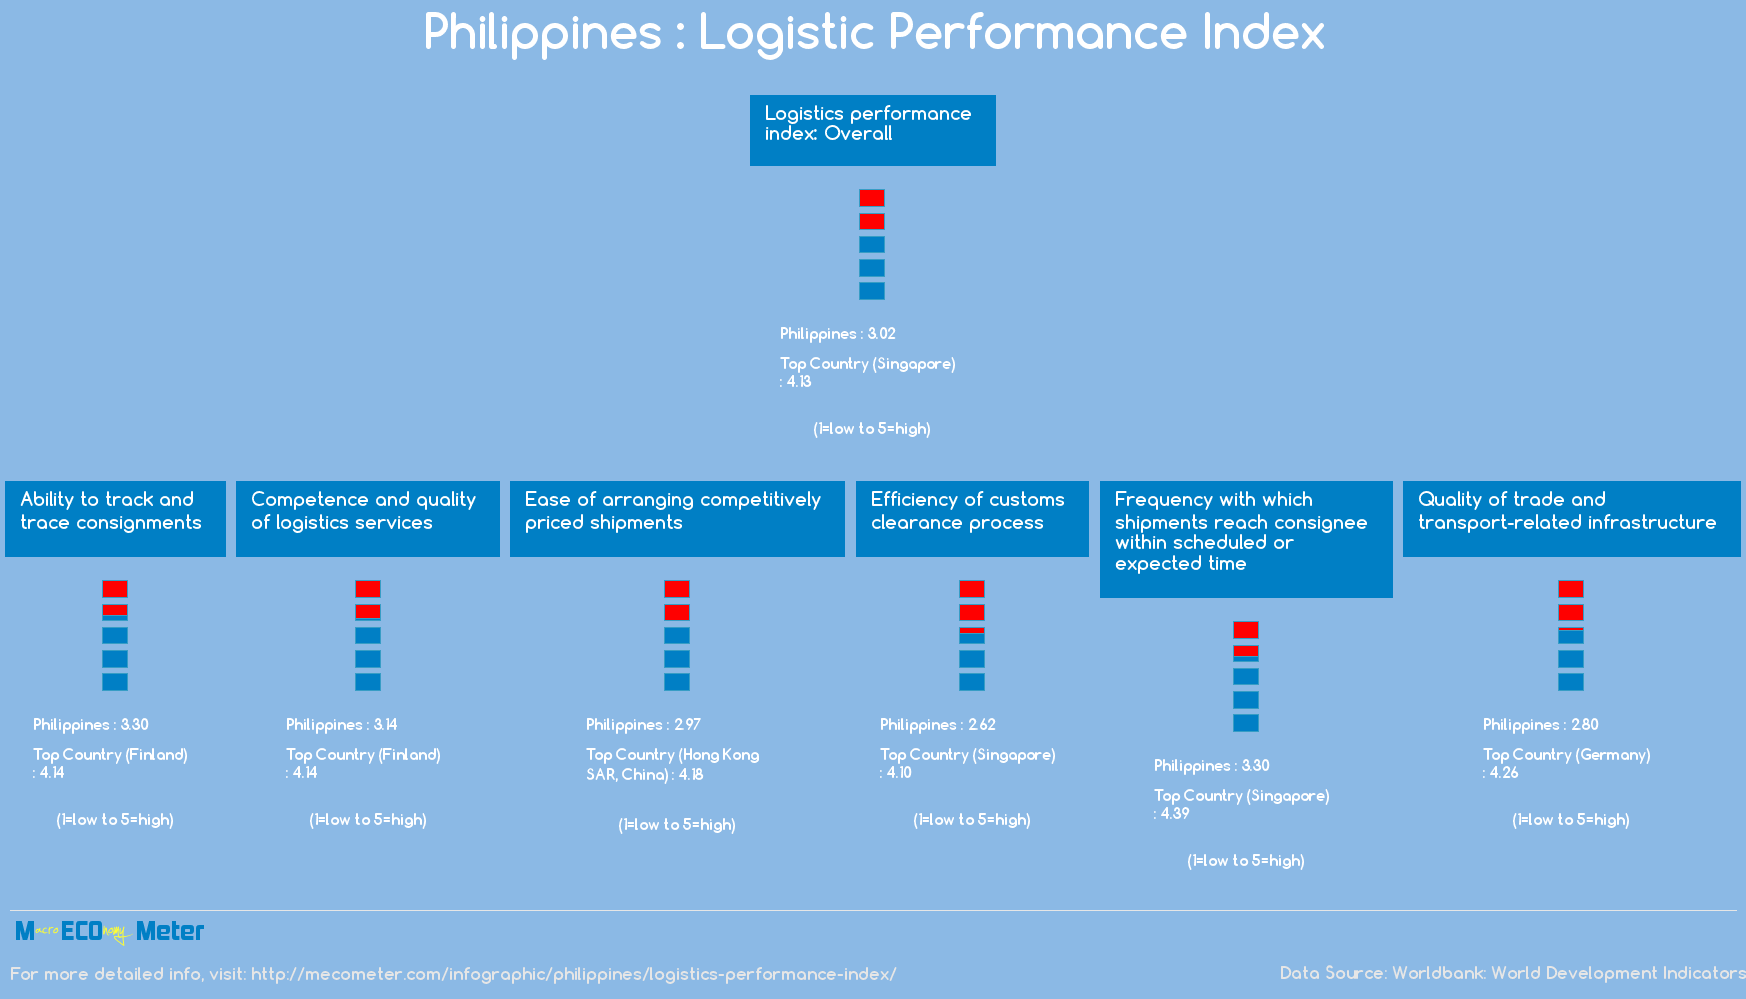 Philippines : Logistic Performance Index